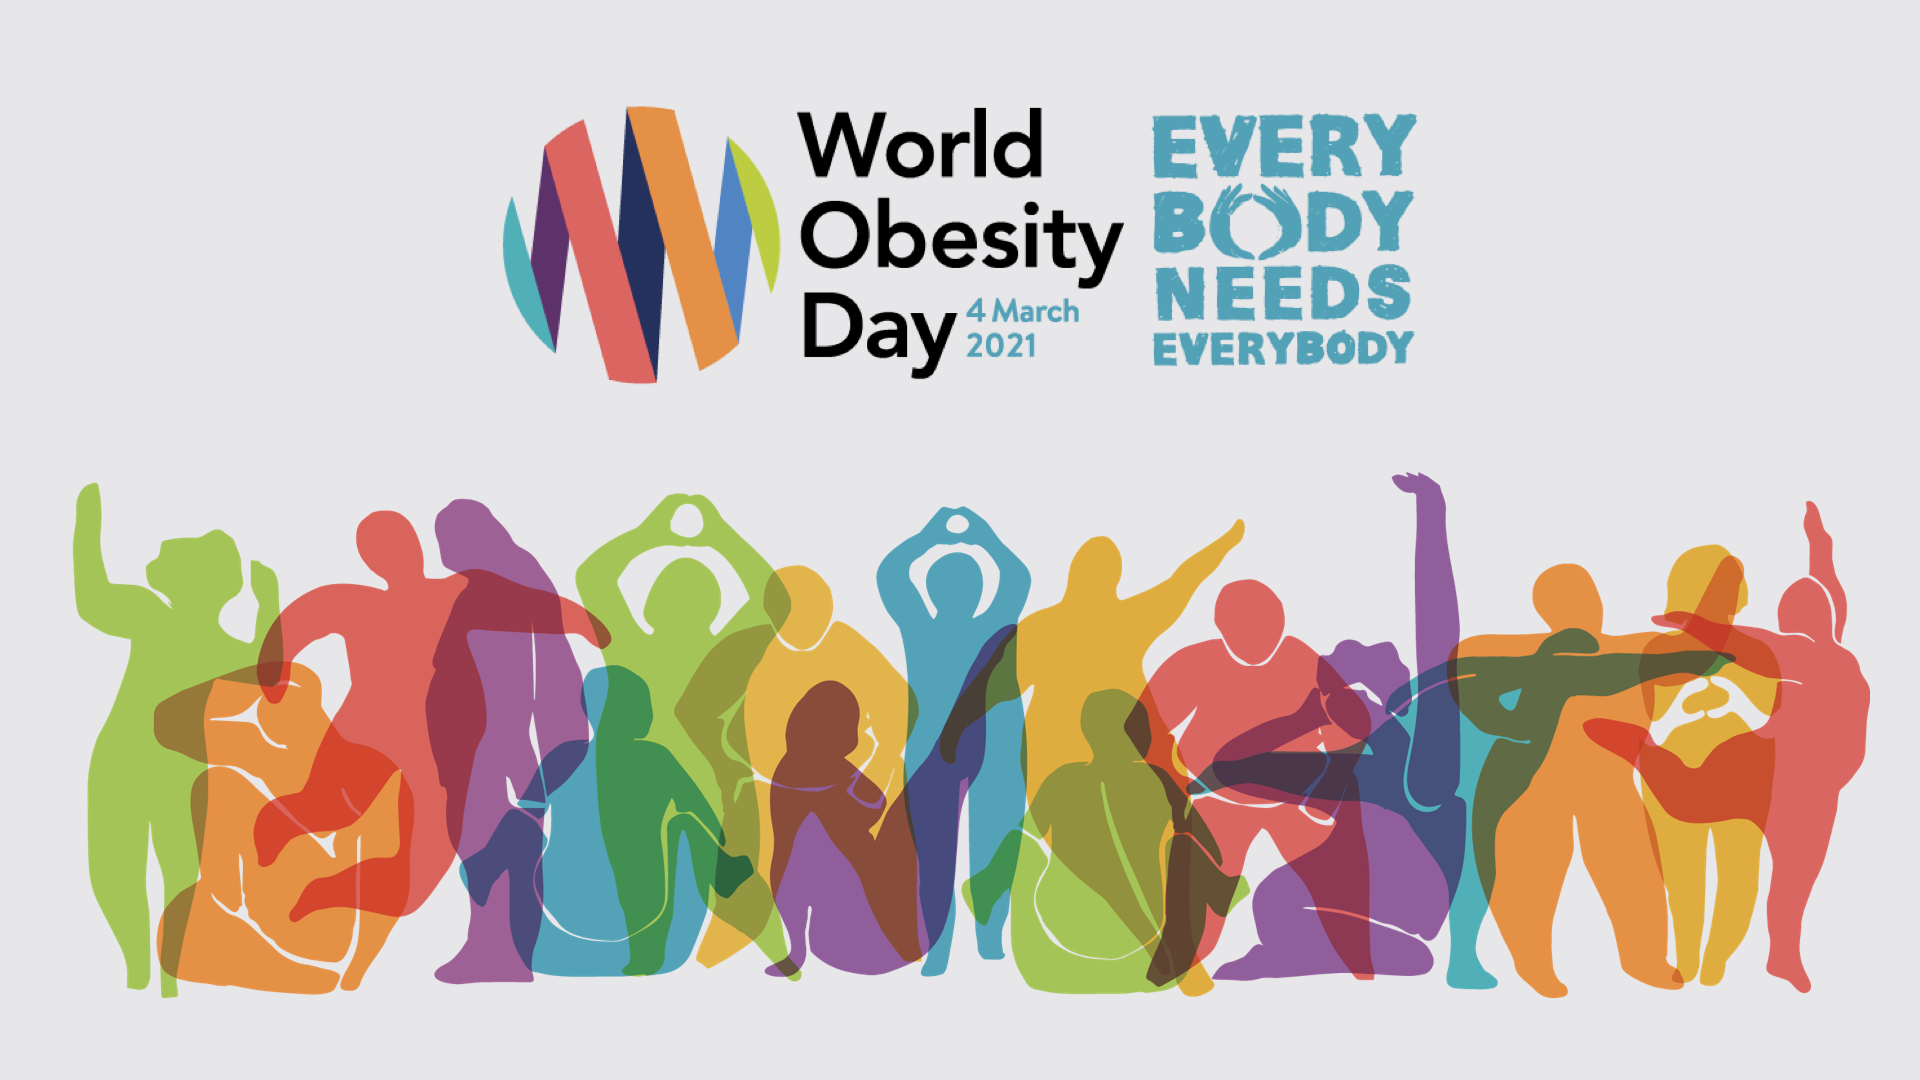 Día mundial de la obesidad: Every Body needs Everybody